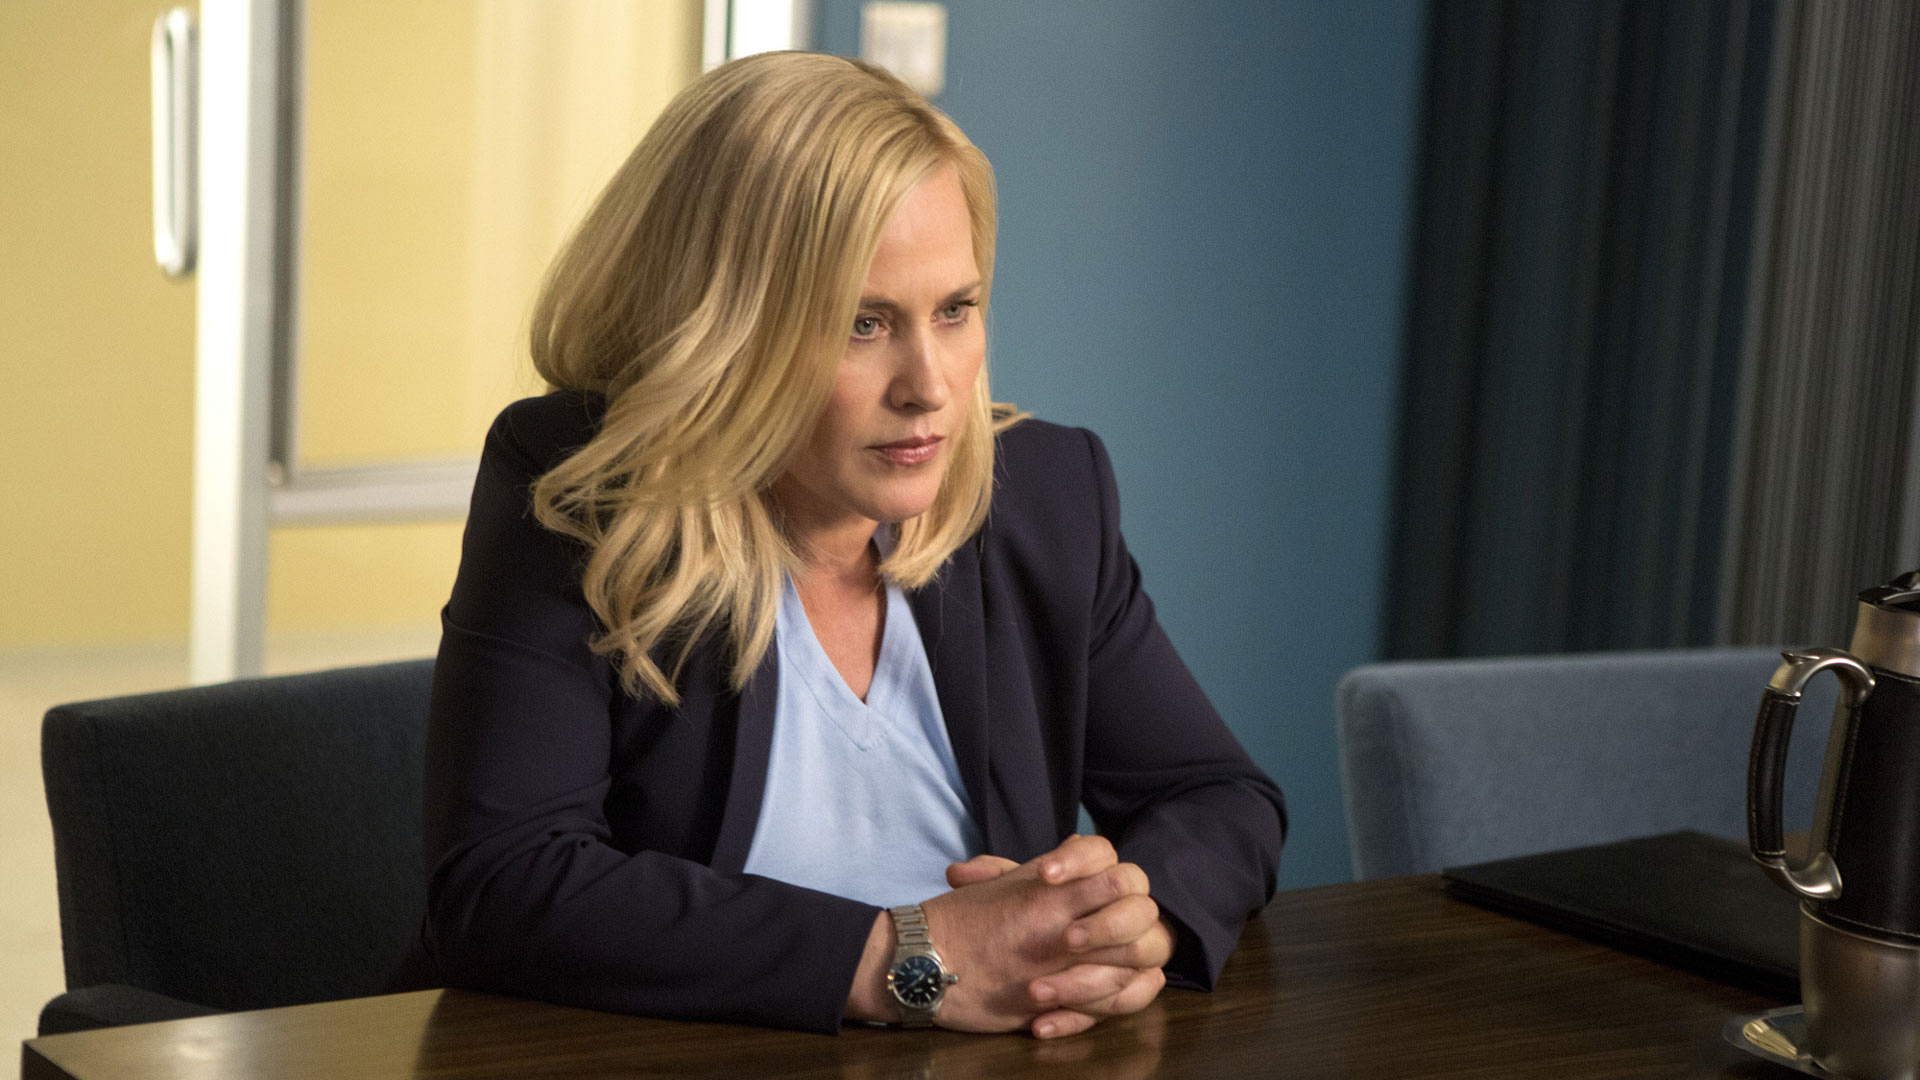 Patricia Arquette as Dr. Avery Ryan